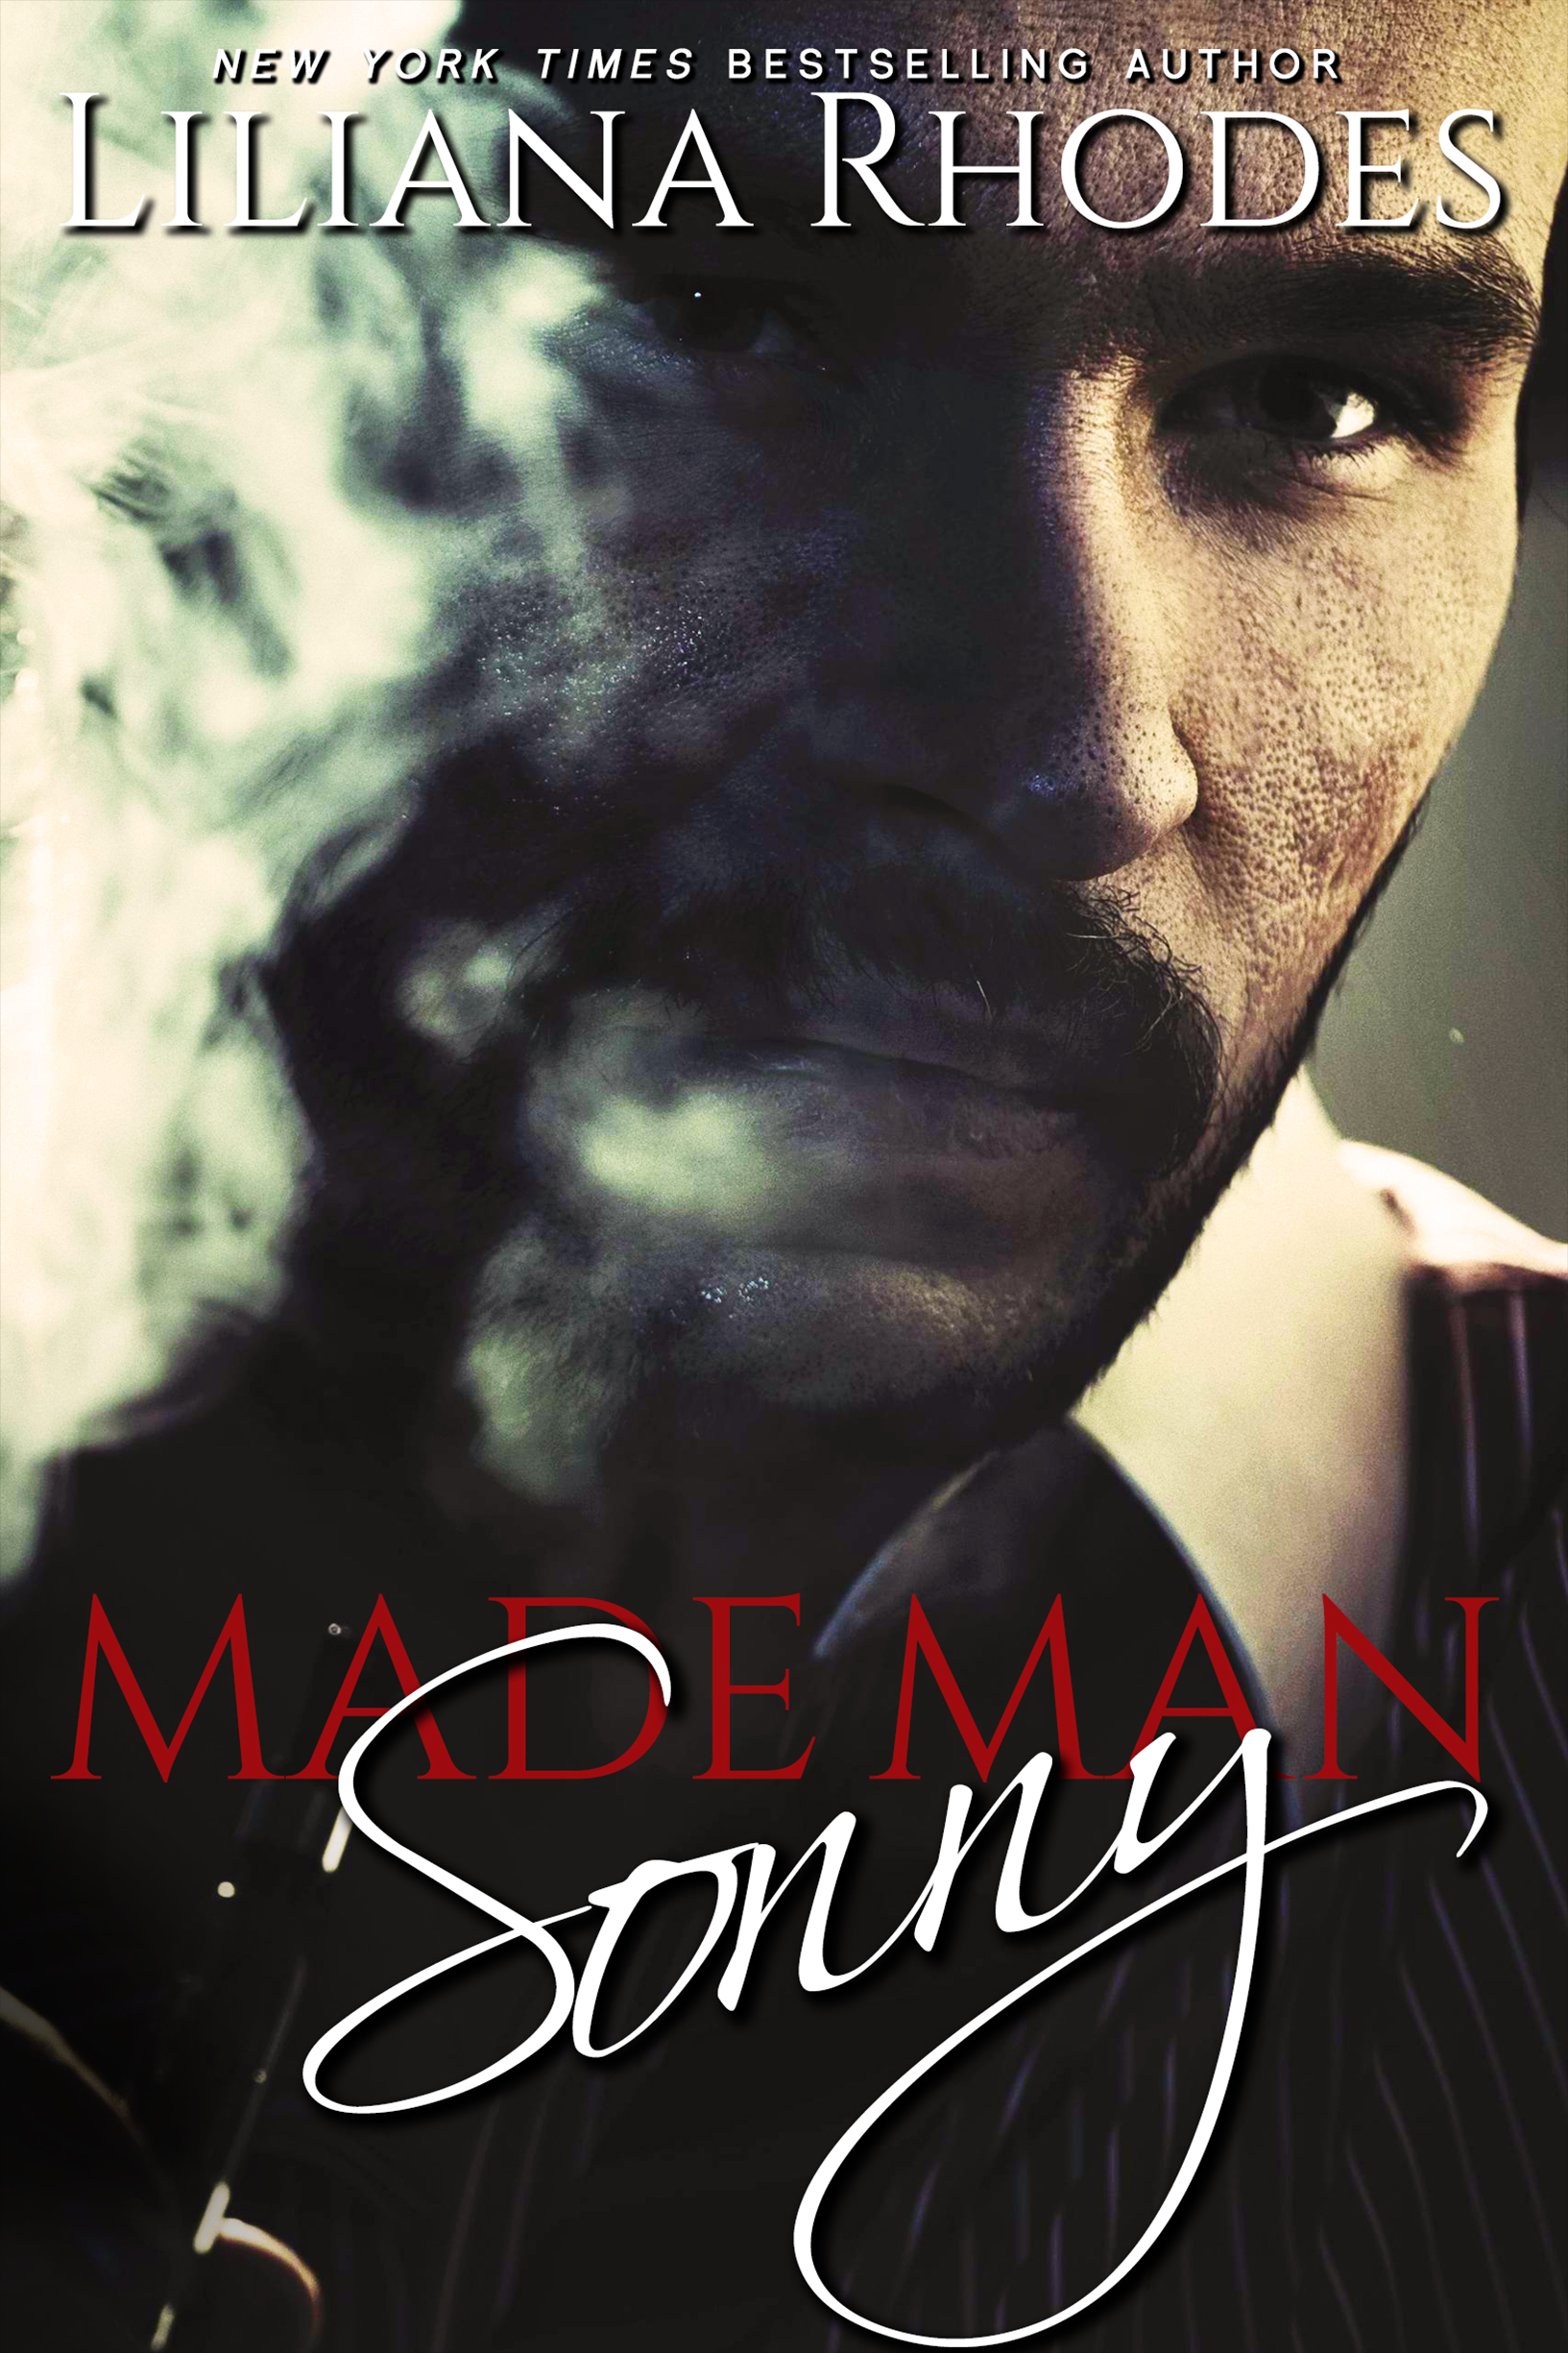 Made Man Sonny by Liliana Rhodes